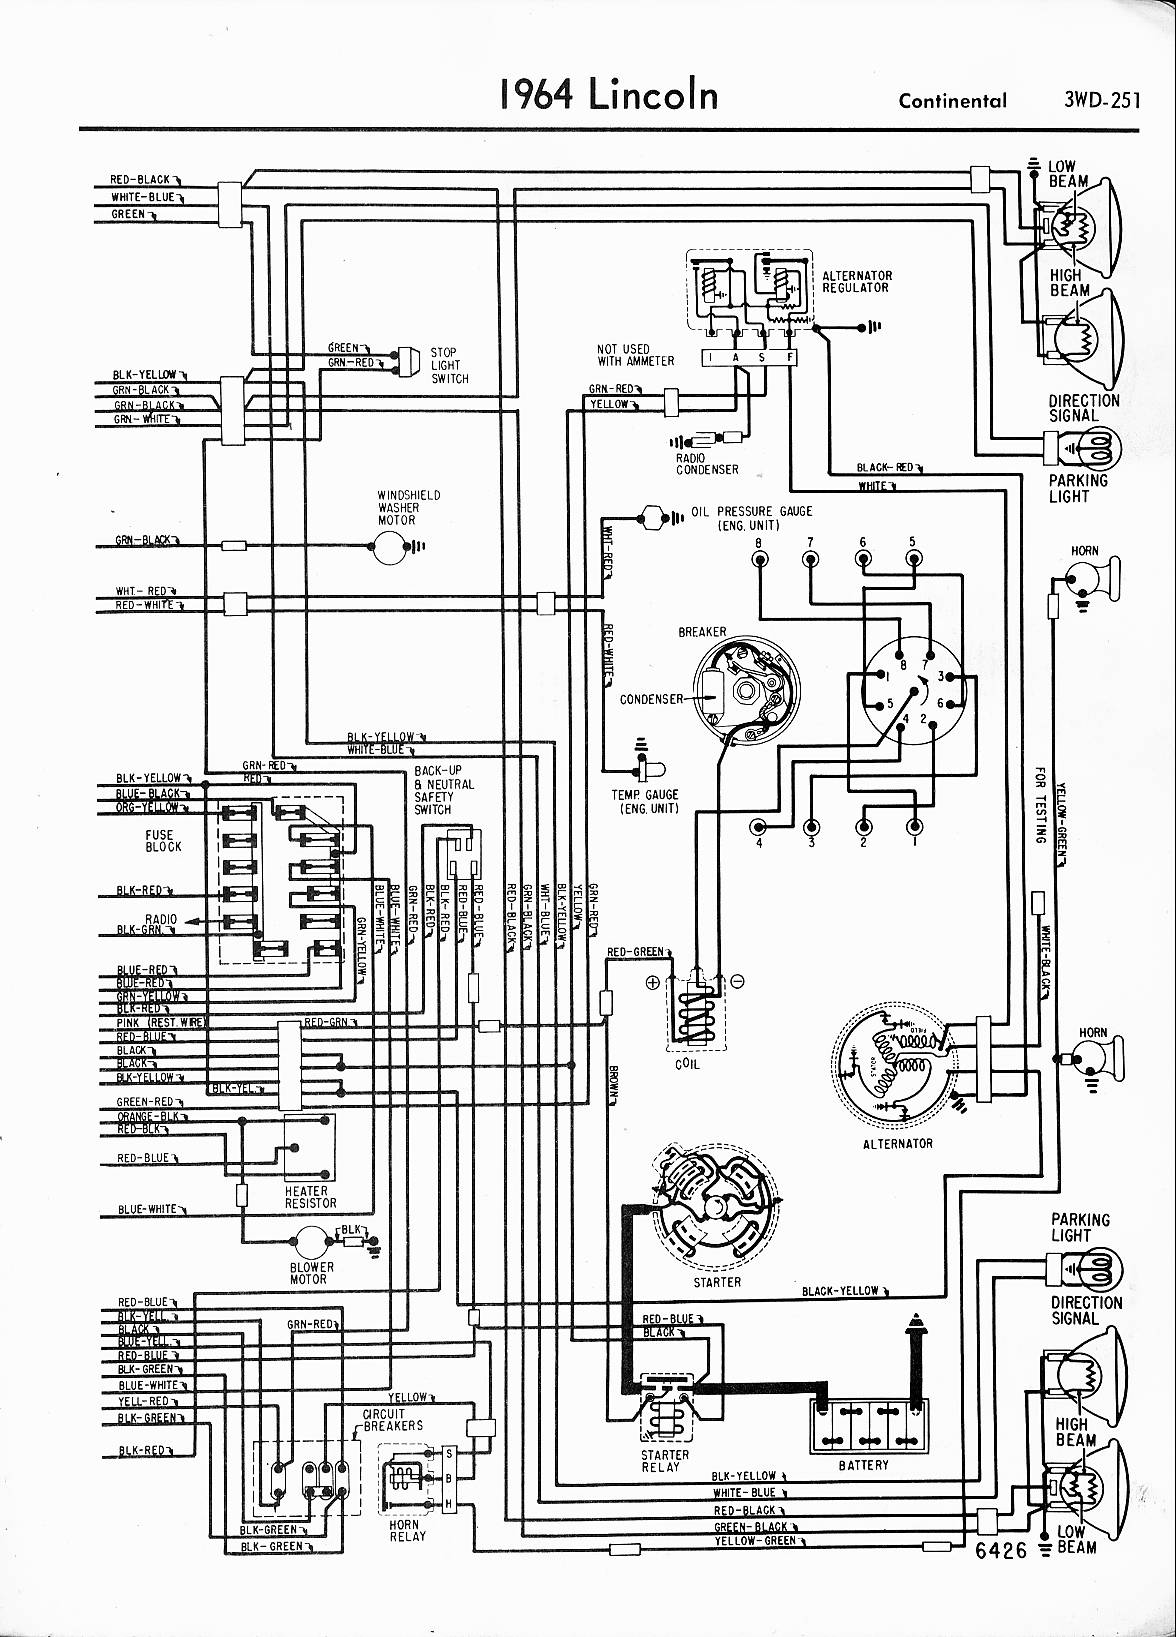 wrg 7916] 1995 pontiac bonneville fuse panel diagram 1965 pontiac gto wiring-diagram wiring diagram for 1995 pontiac bonneville #10